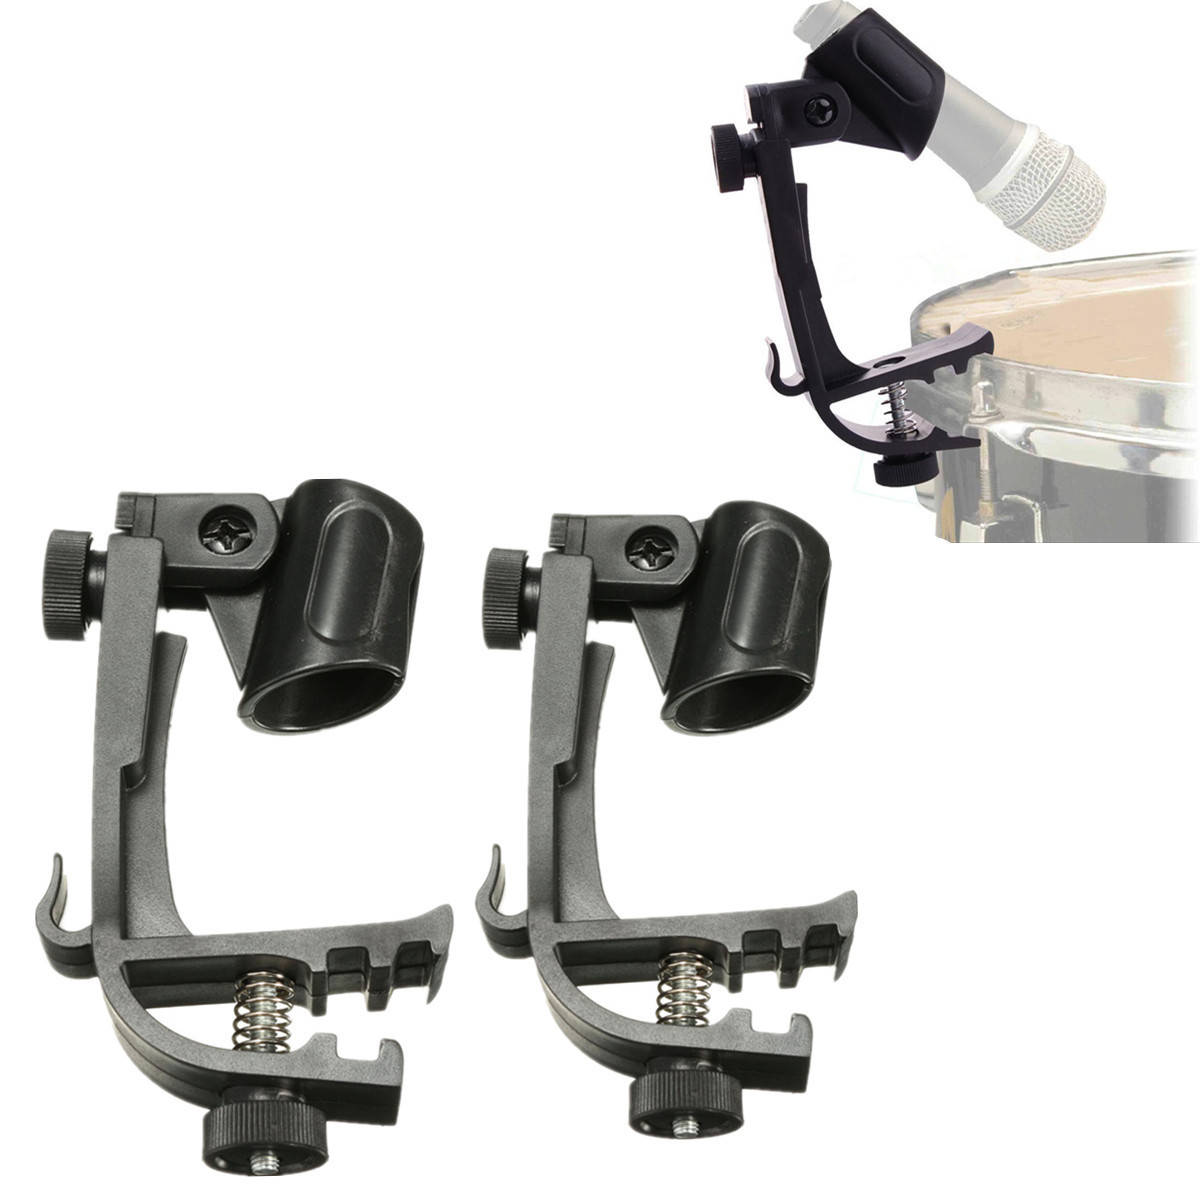 Zebra 2 pcs/Lot Plastic+Metal Microphone Adjustable Stage Drum Clips Mic Rim Snare Mount Clamp Holder Groove Gear Studio Stand